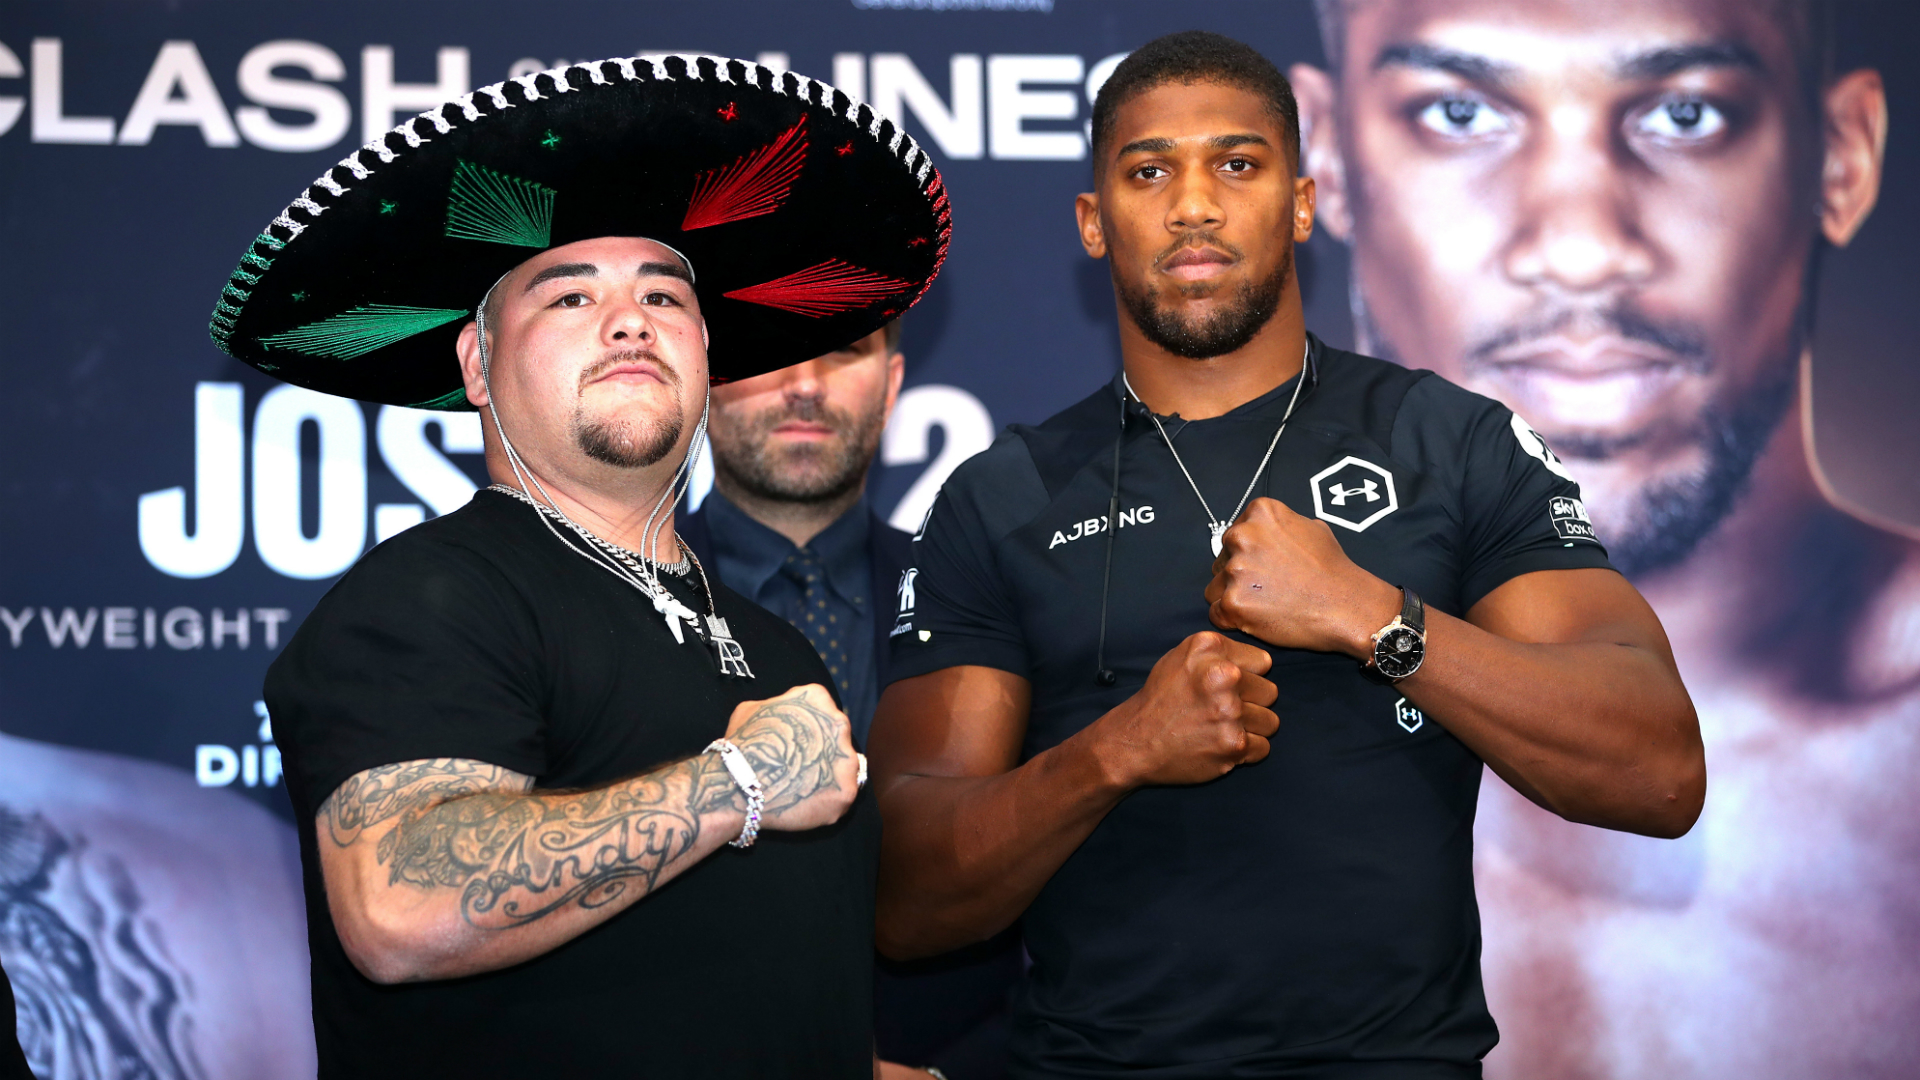 Ruiz v Joshua II: Can AJ reclaim the belts? - The debate